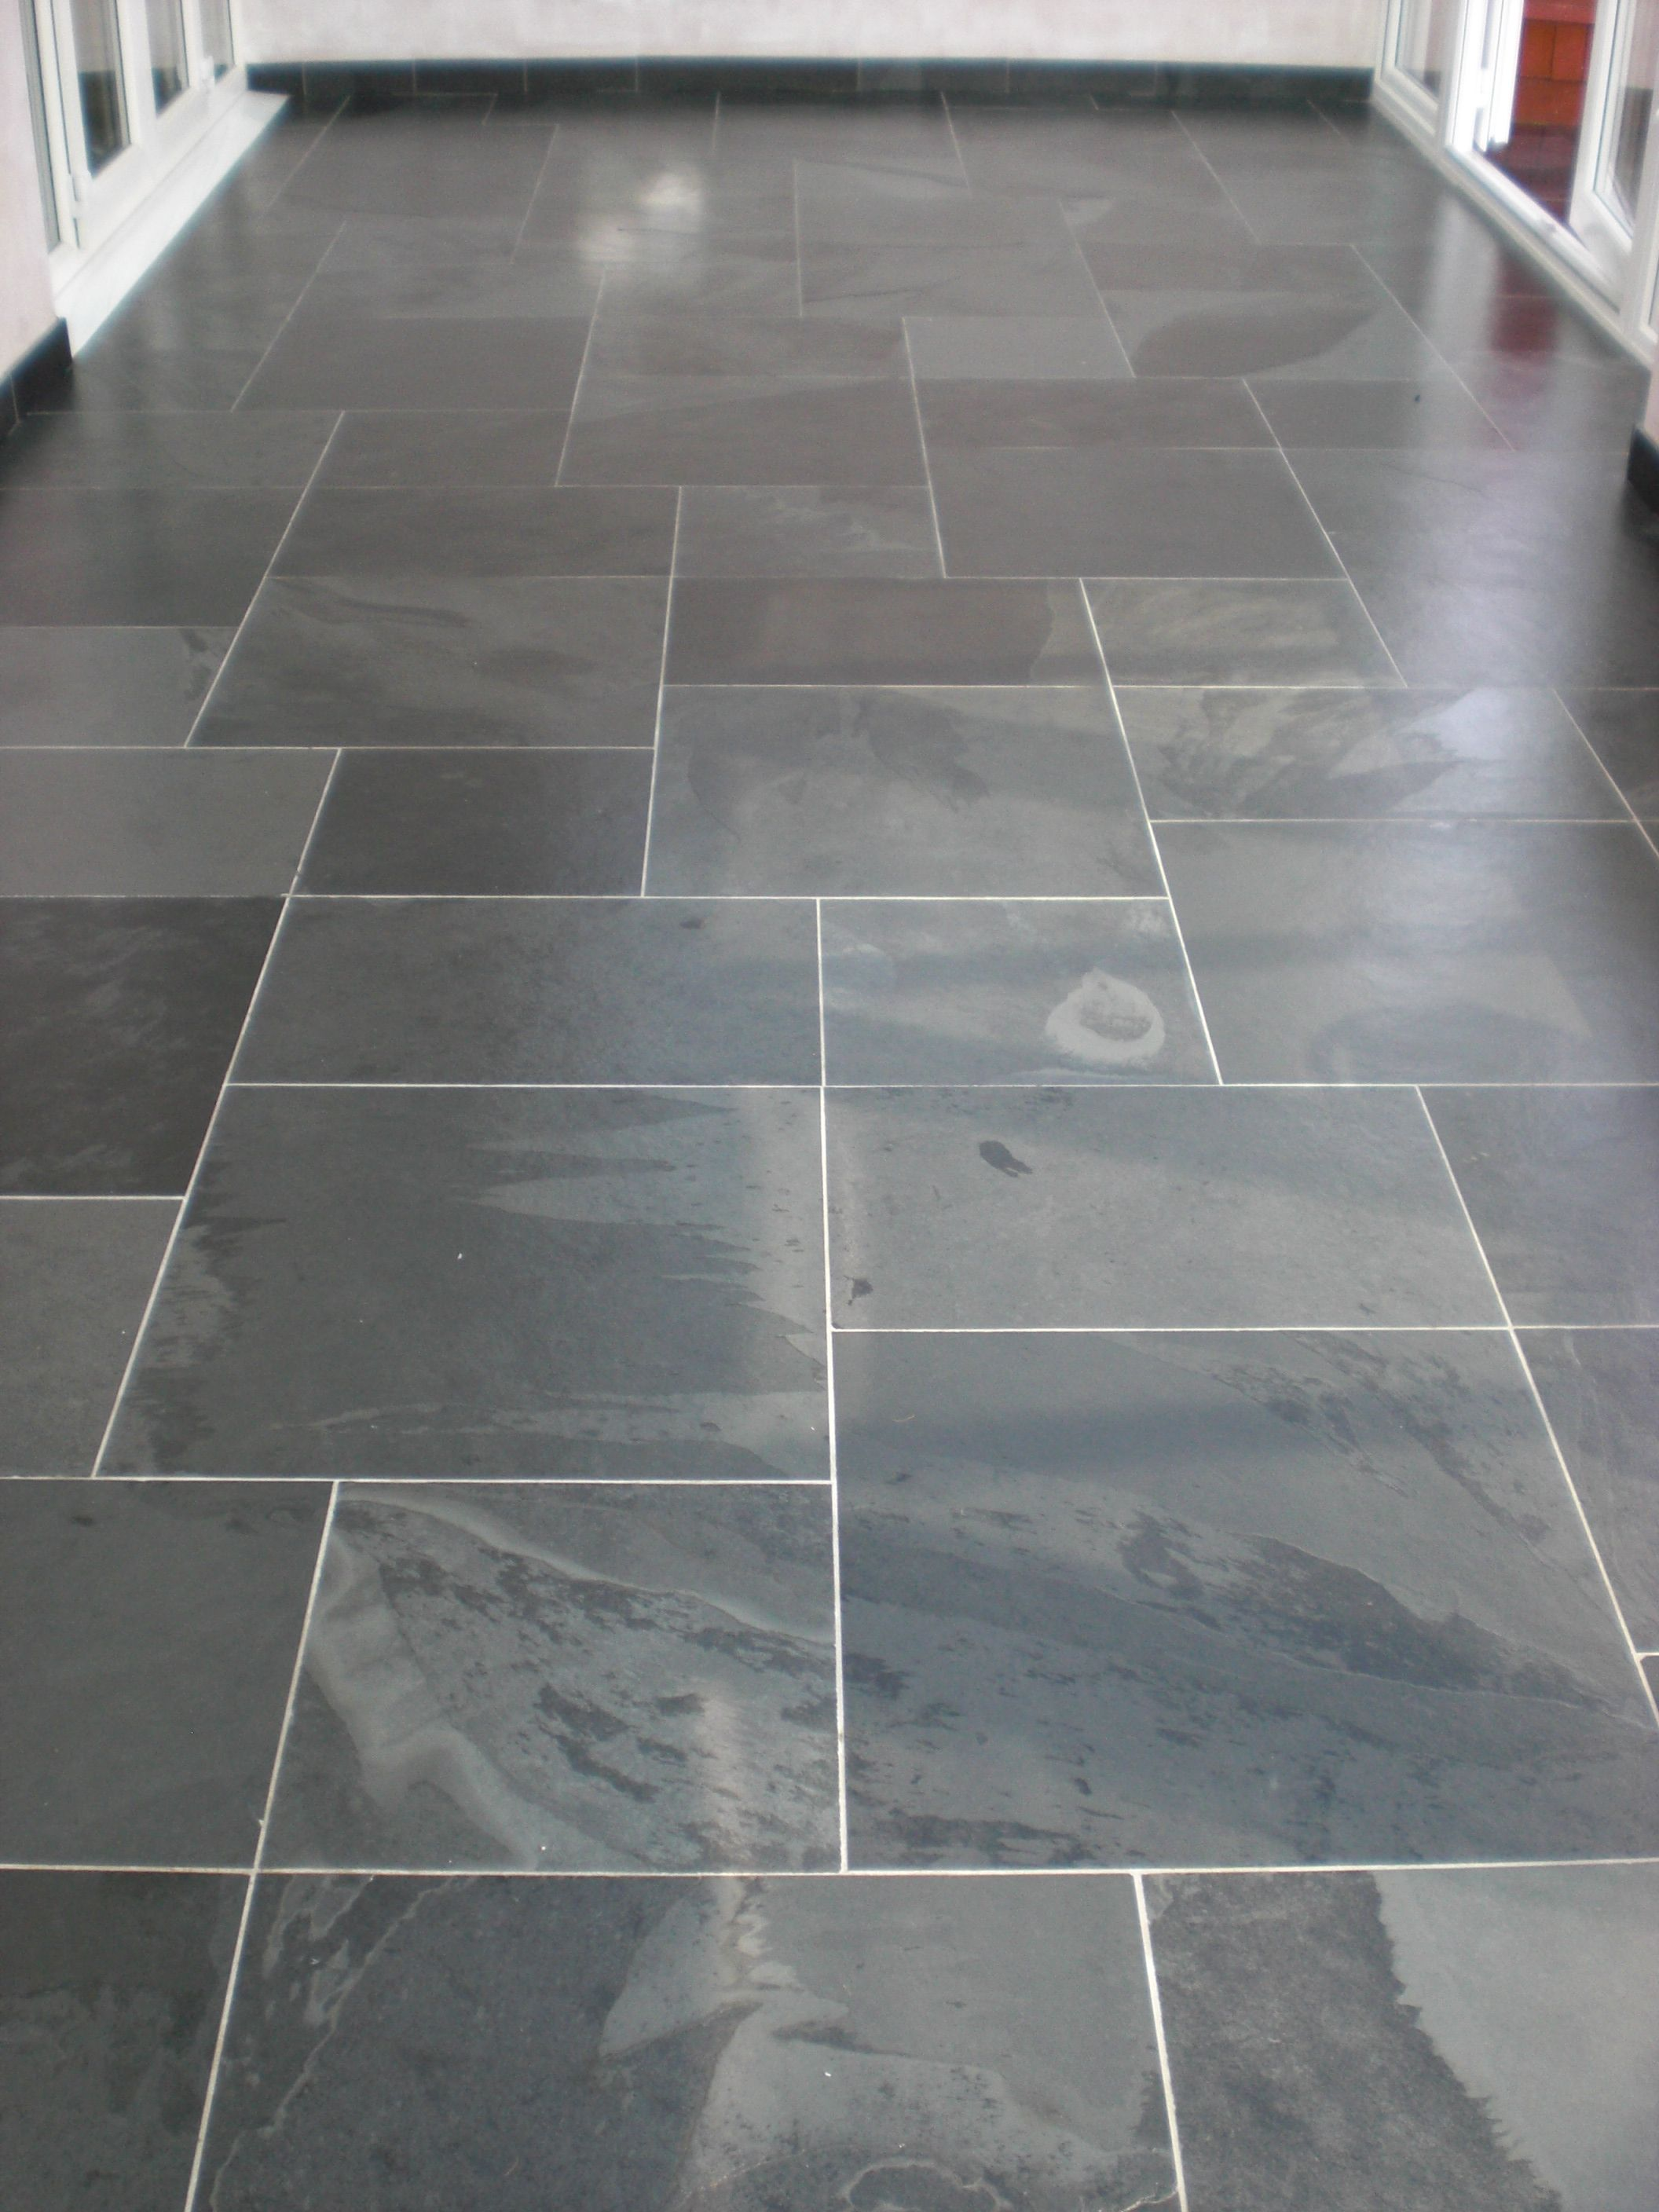 Honed welsh slate floor tiles httpnextsoft21 pinterest honed welsh slate floor tiles dailygadgetfo Image collections